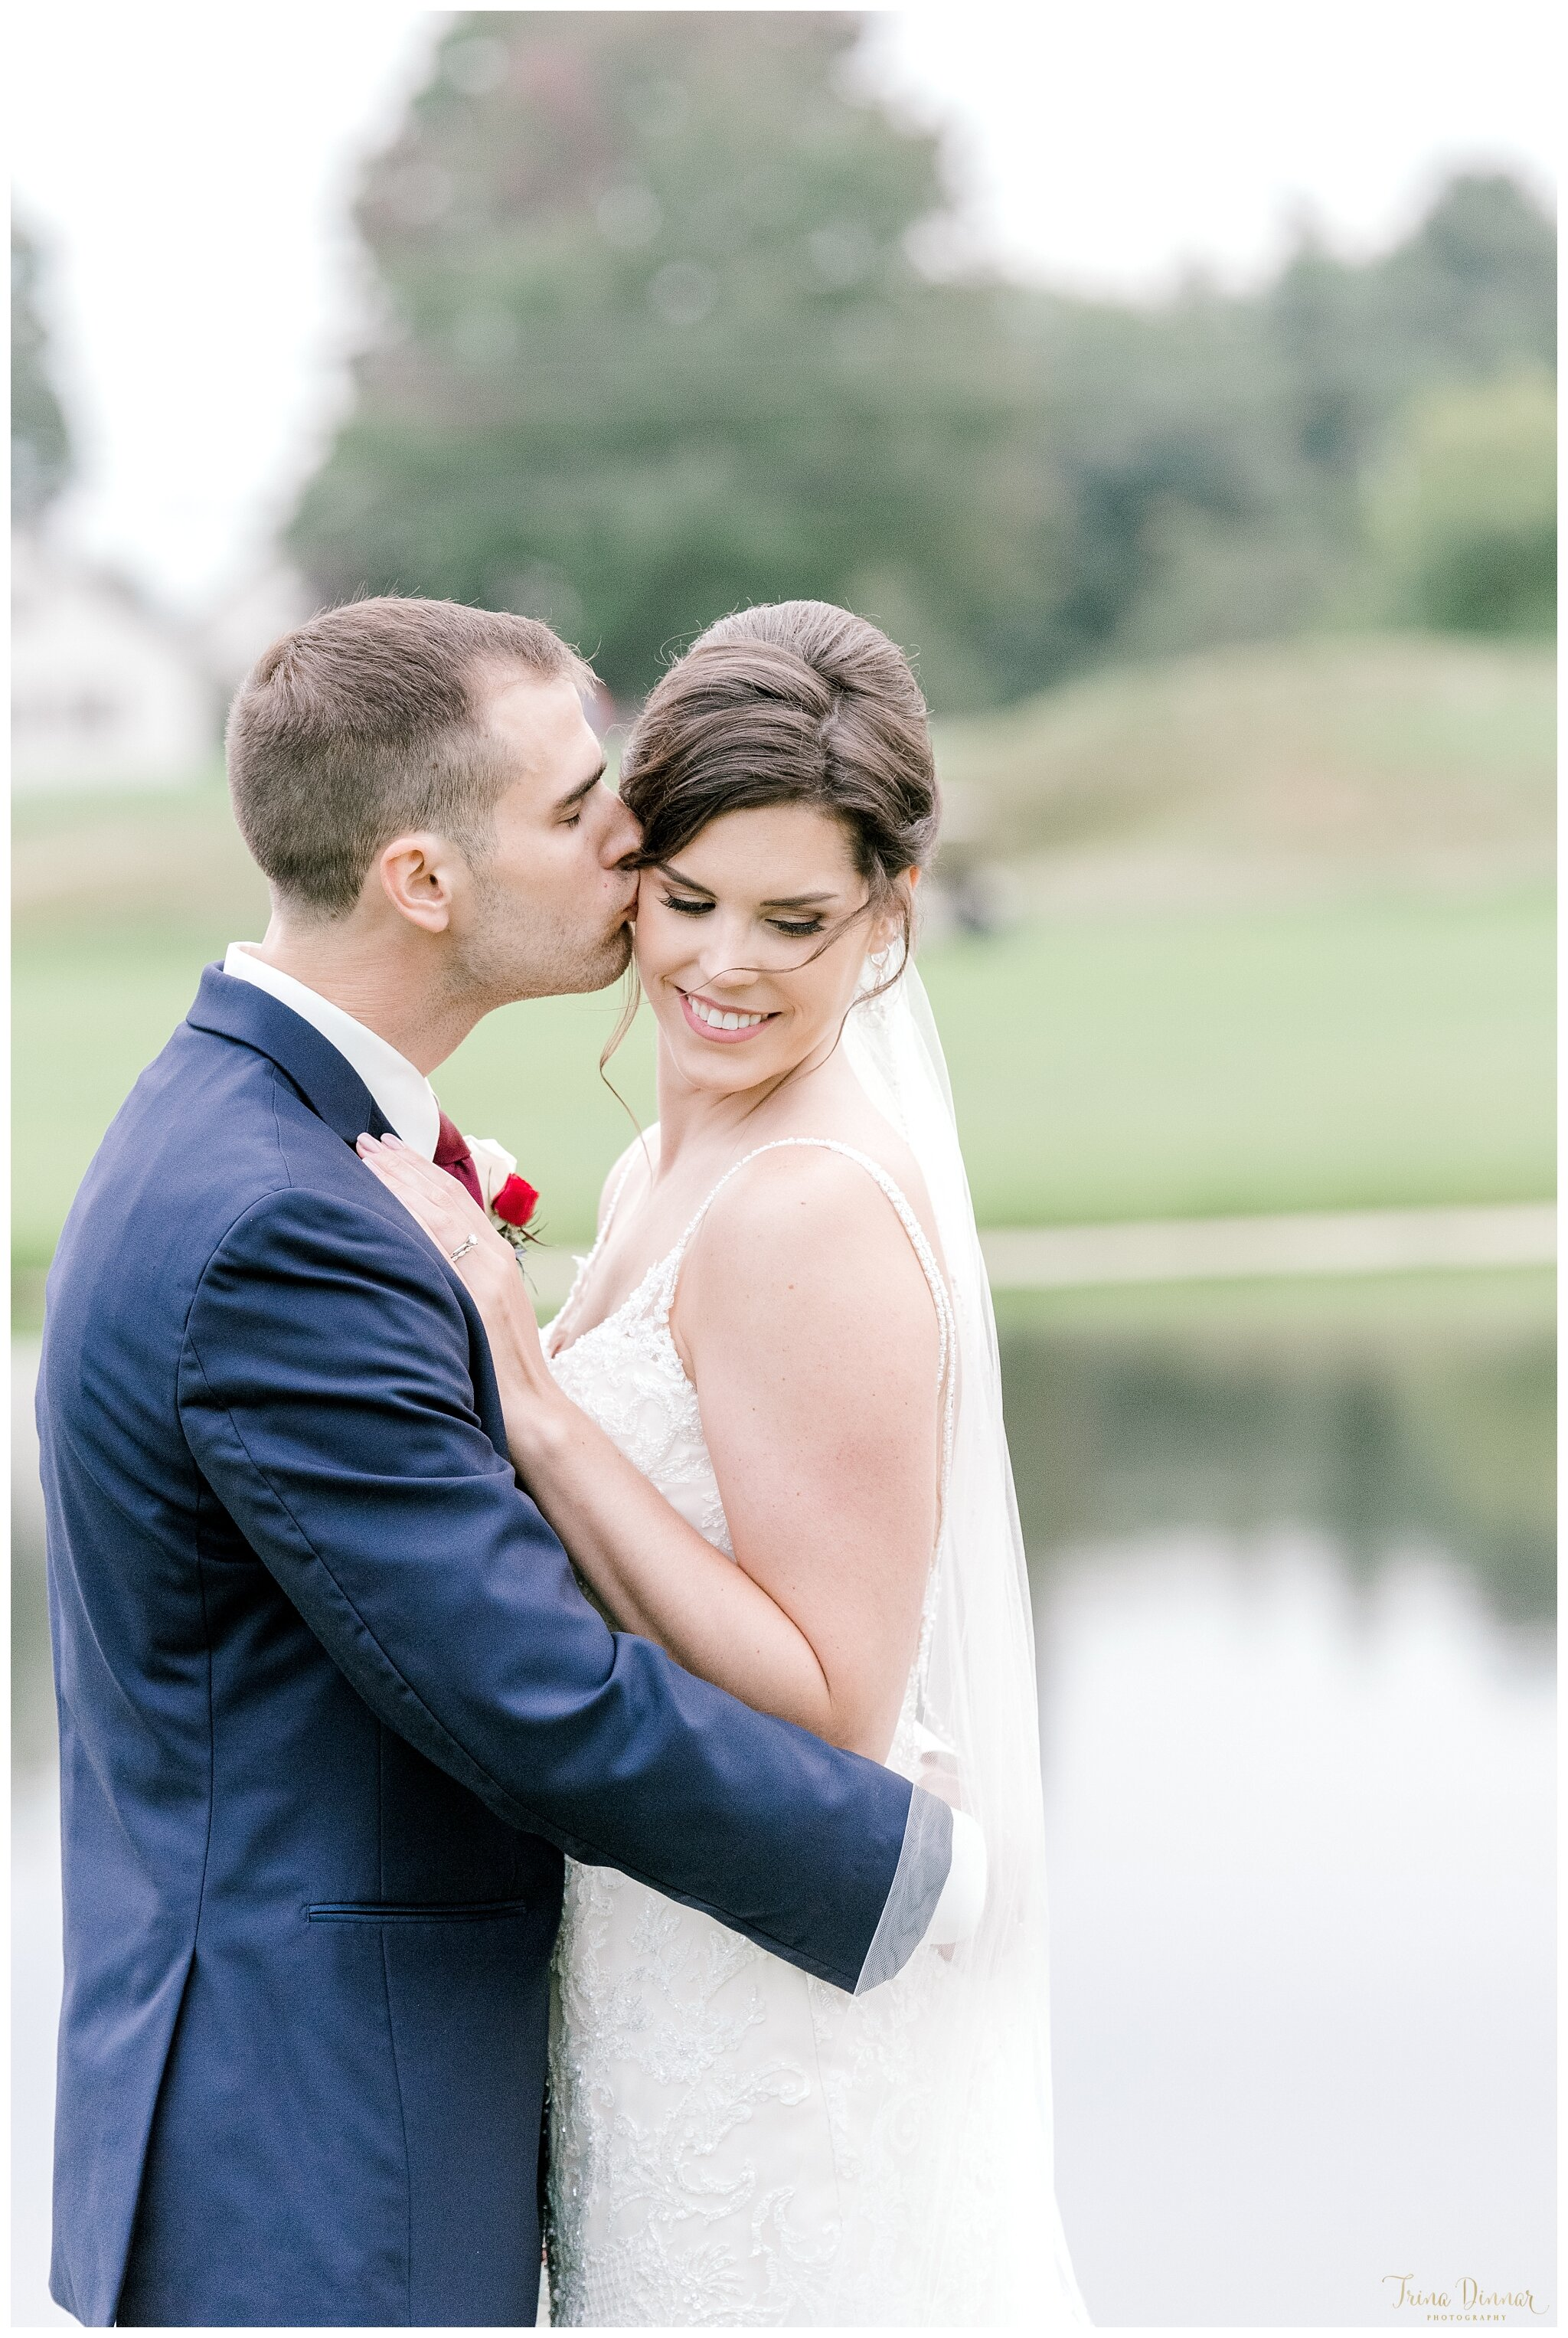 Alayna and Shawn Bride and Groom Portrait